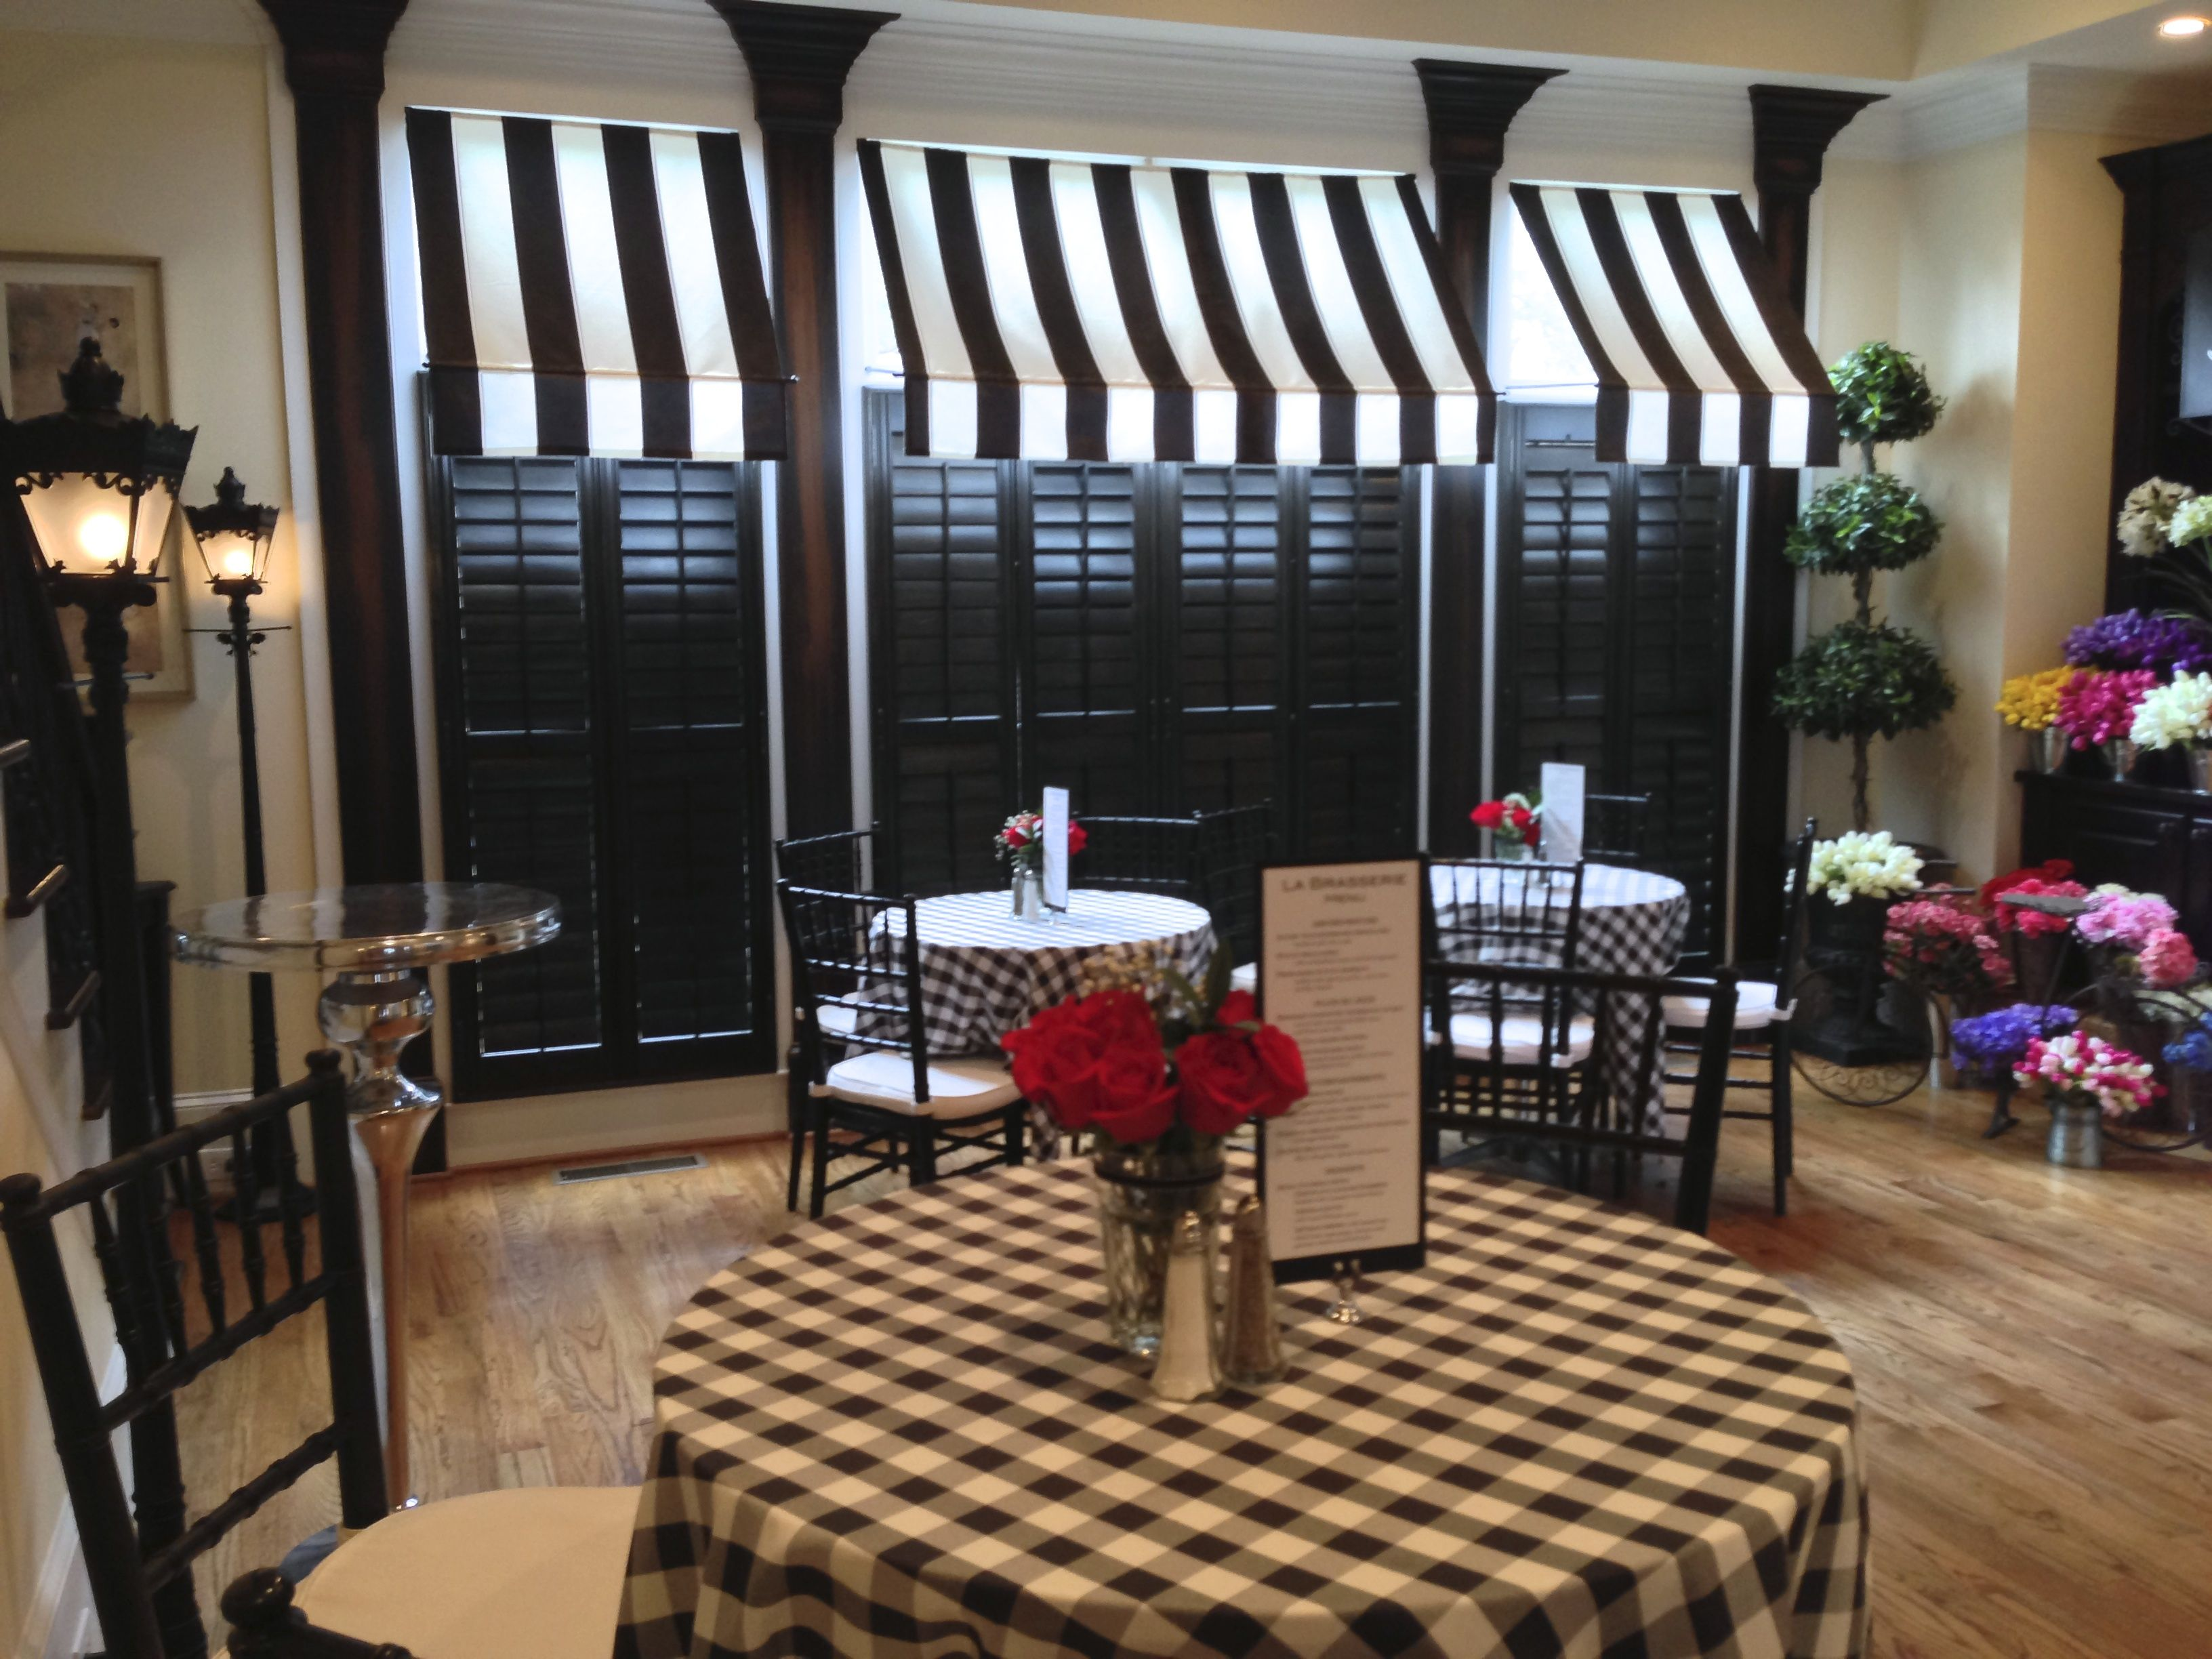 Black And White Awnings Created The Feel Of A Parisian